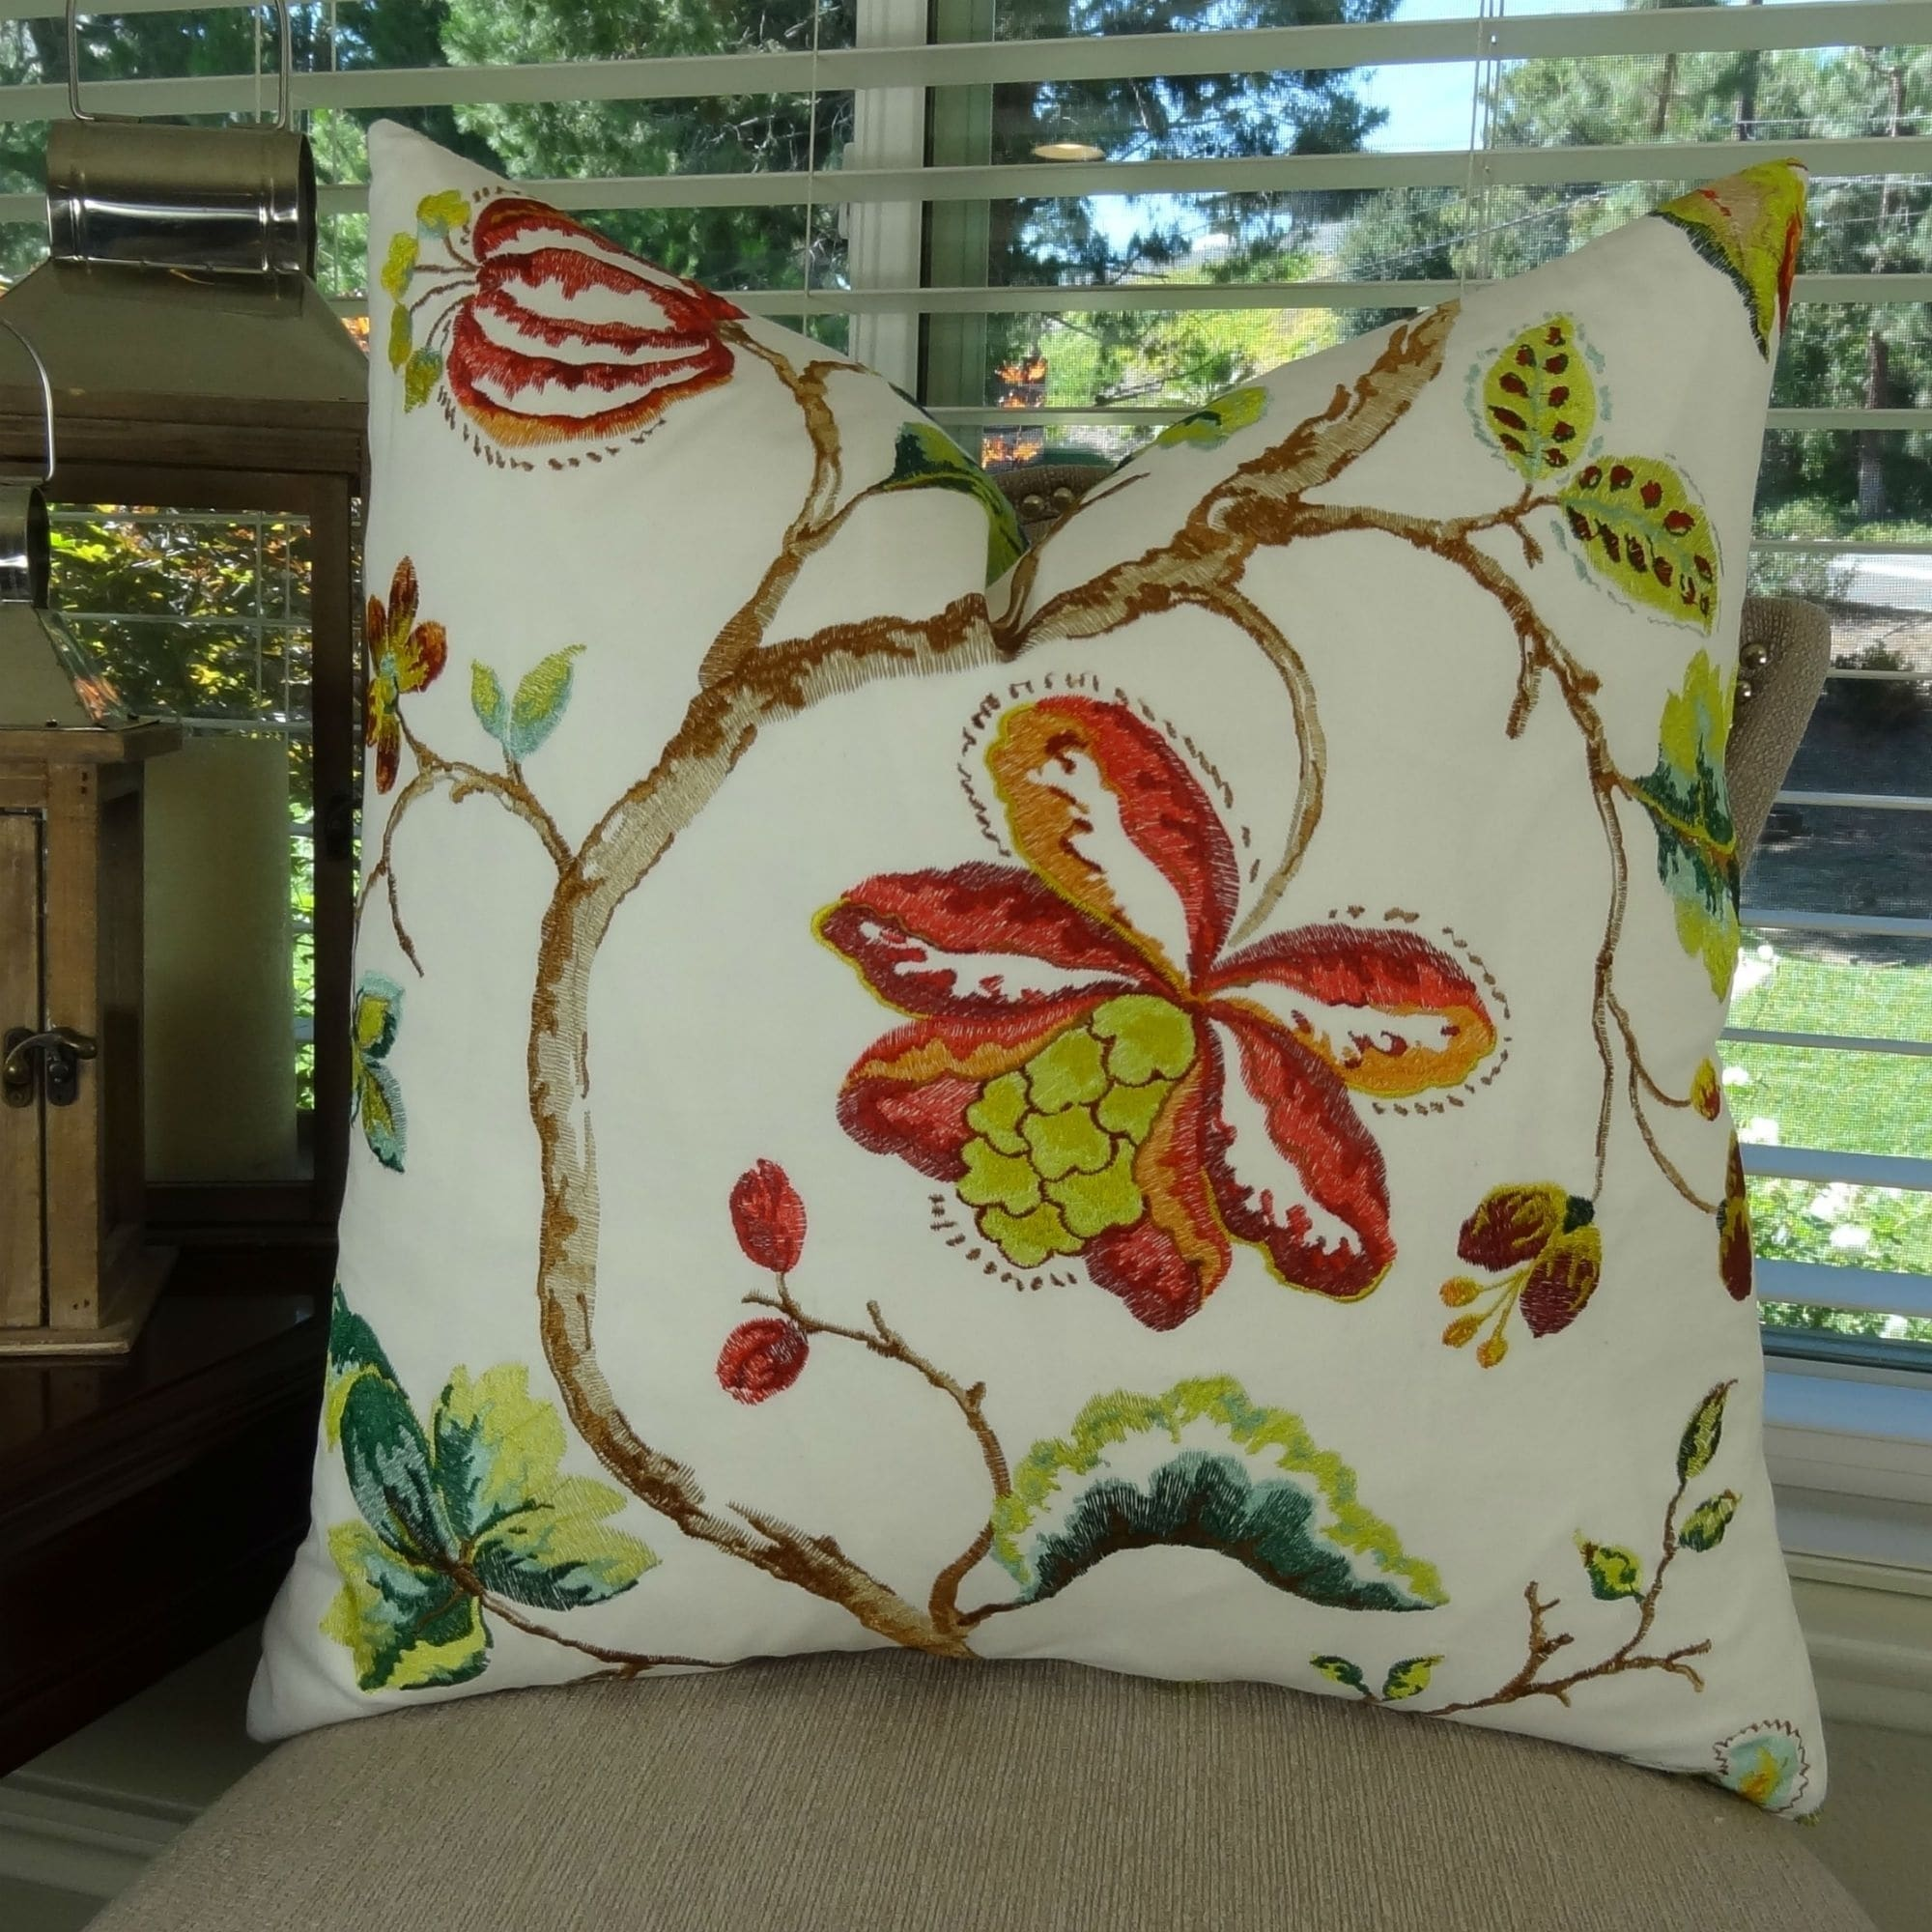 Thomas Collection Floral White Coral Red Green Embroidered Throw Pillow, Handmade in USA, 11431S (Oversized - Square - 26 x 26)